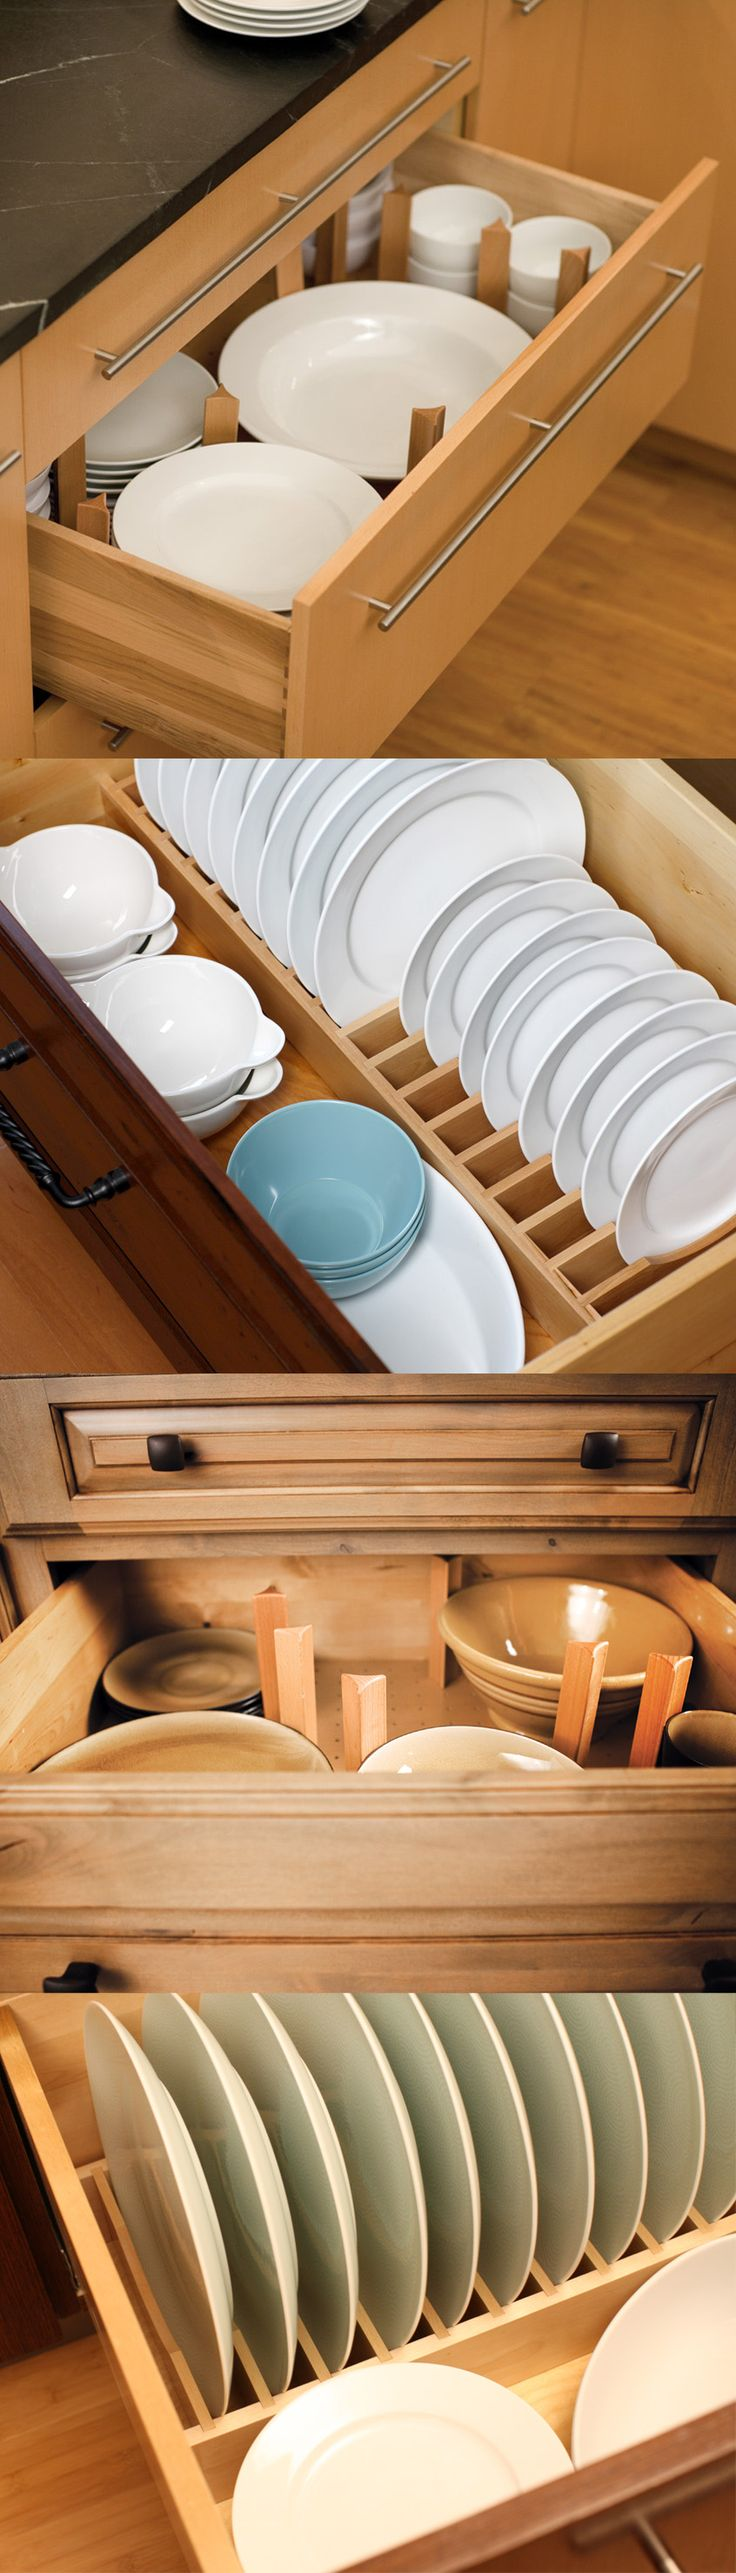 Tip! A dish rack drawer organizer can make dishes a cinch when next to the sink or dishwasher! They are also a safer solution for teaching children how to do the dishes and is wheel chair accessible. No more reaching over your head for breakable plates and bowls! - Dura Supreme Cabinetry